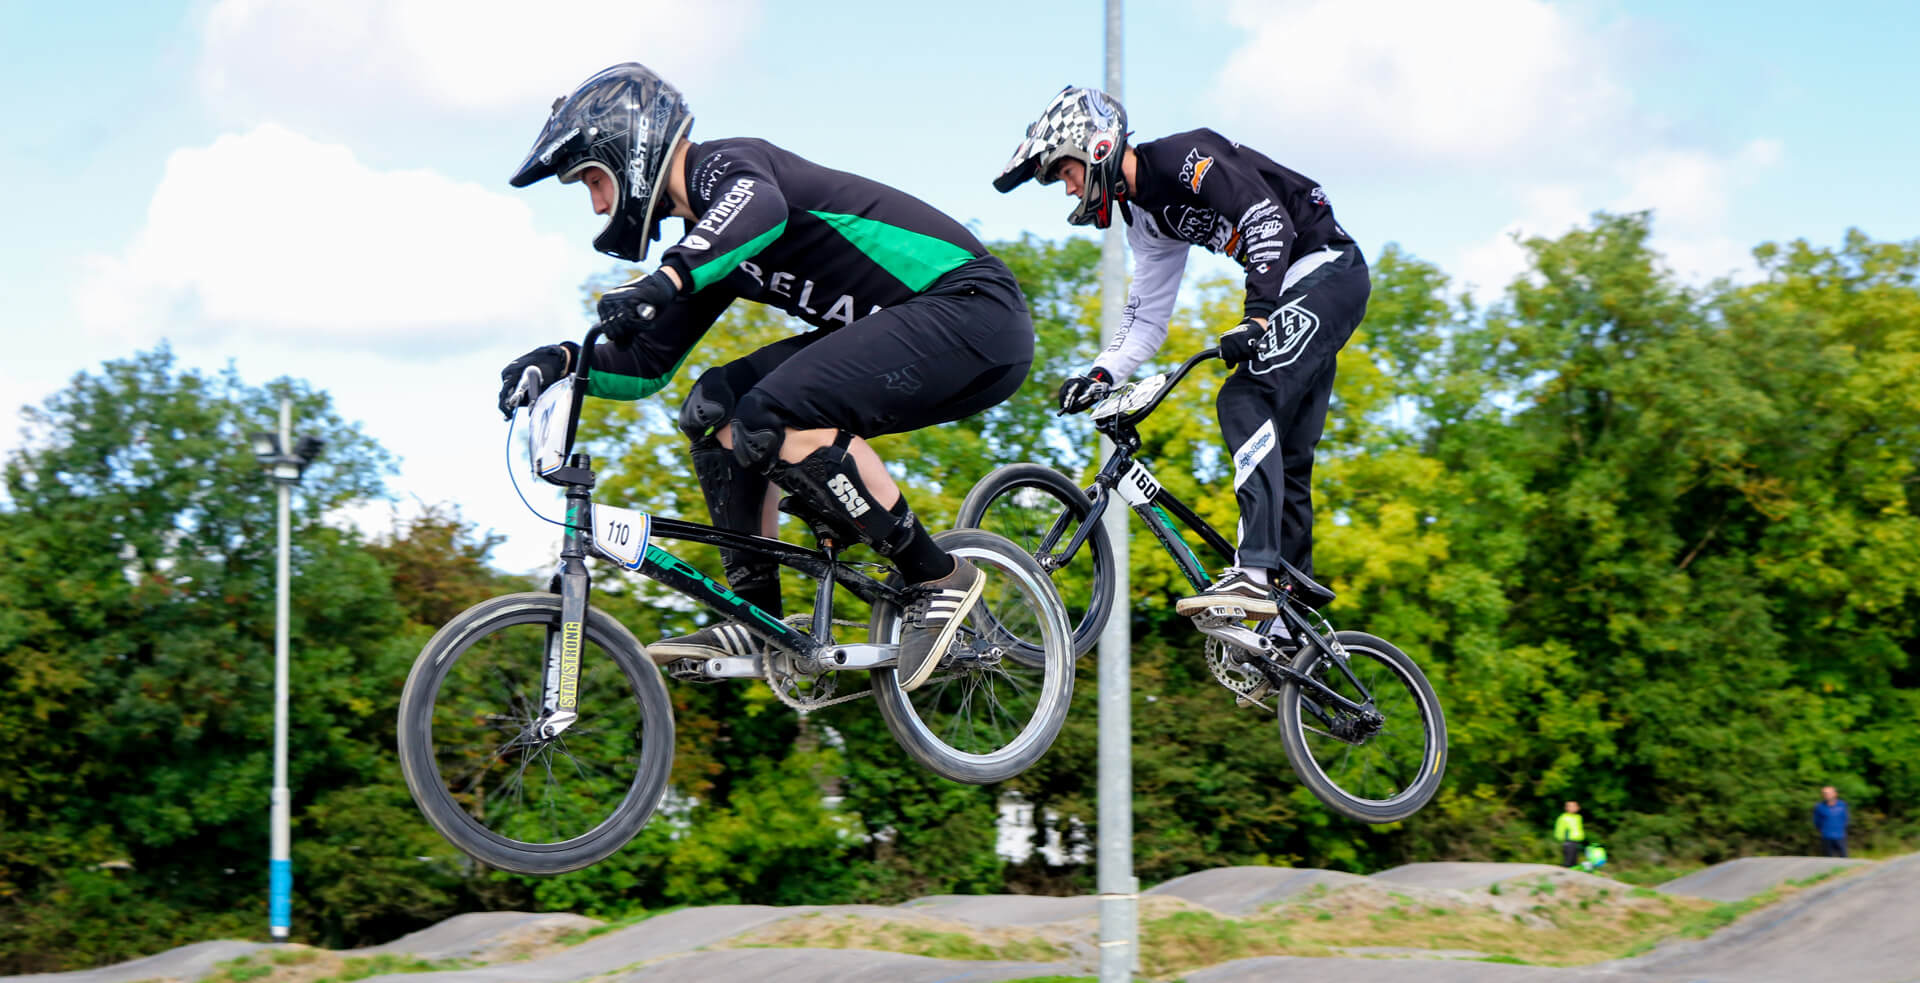 2017 UCI WCC Talent Camp Malone Murphy - Fifteen BMX